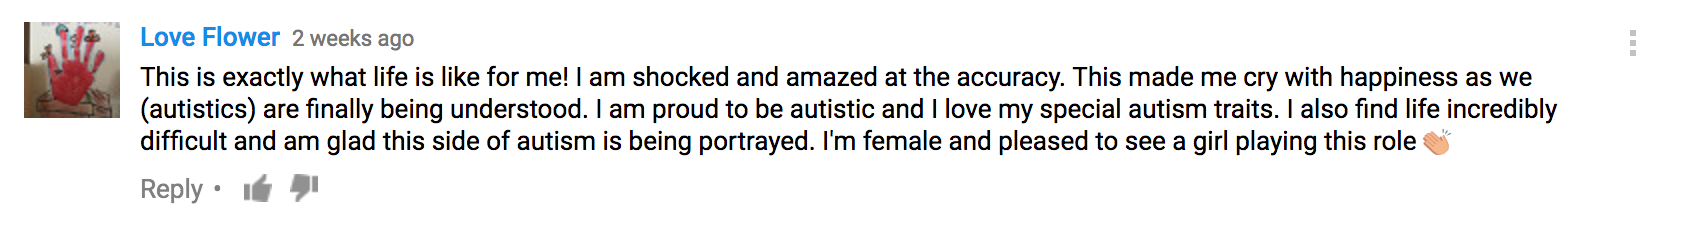 This is exactly what life is like for me! I am shocked and amazed at the accuracy. This made me cry with happiness as we (autistics) are finally being understood. I am proud to be autistic and I love my special autism traits. I also find life incredibly difficult and am glad this side of autism is being portrayed. I'm female and pleased to see a girl playing this role